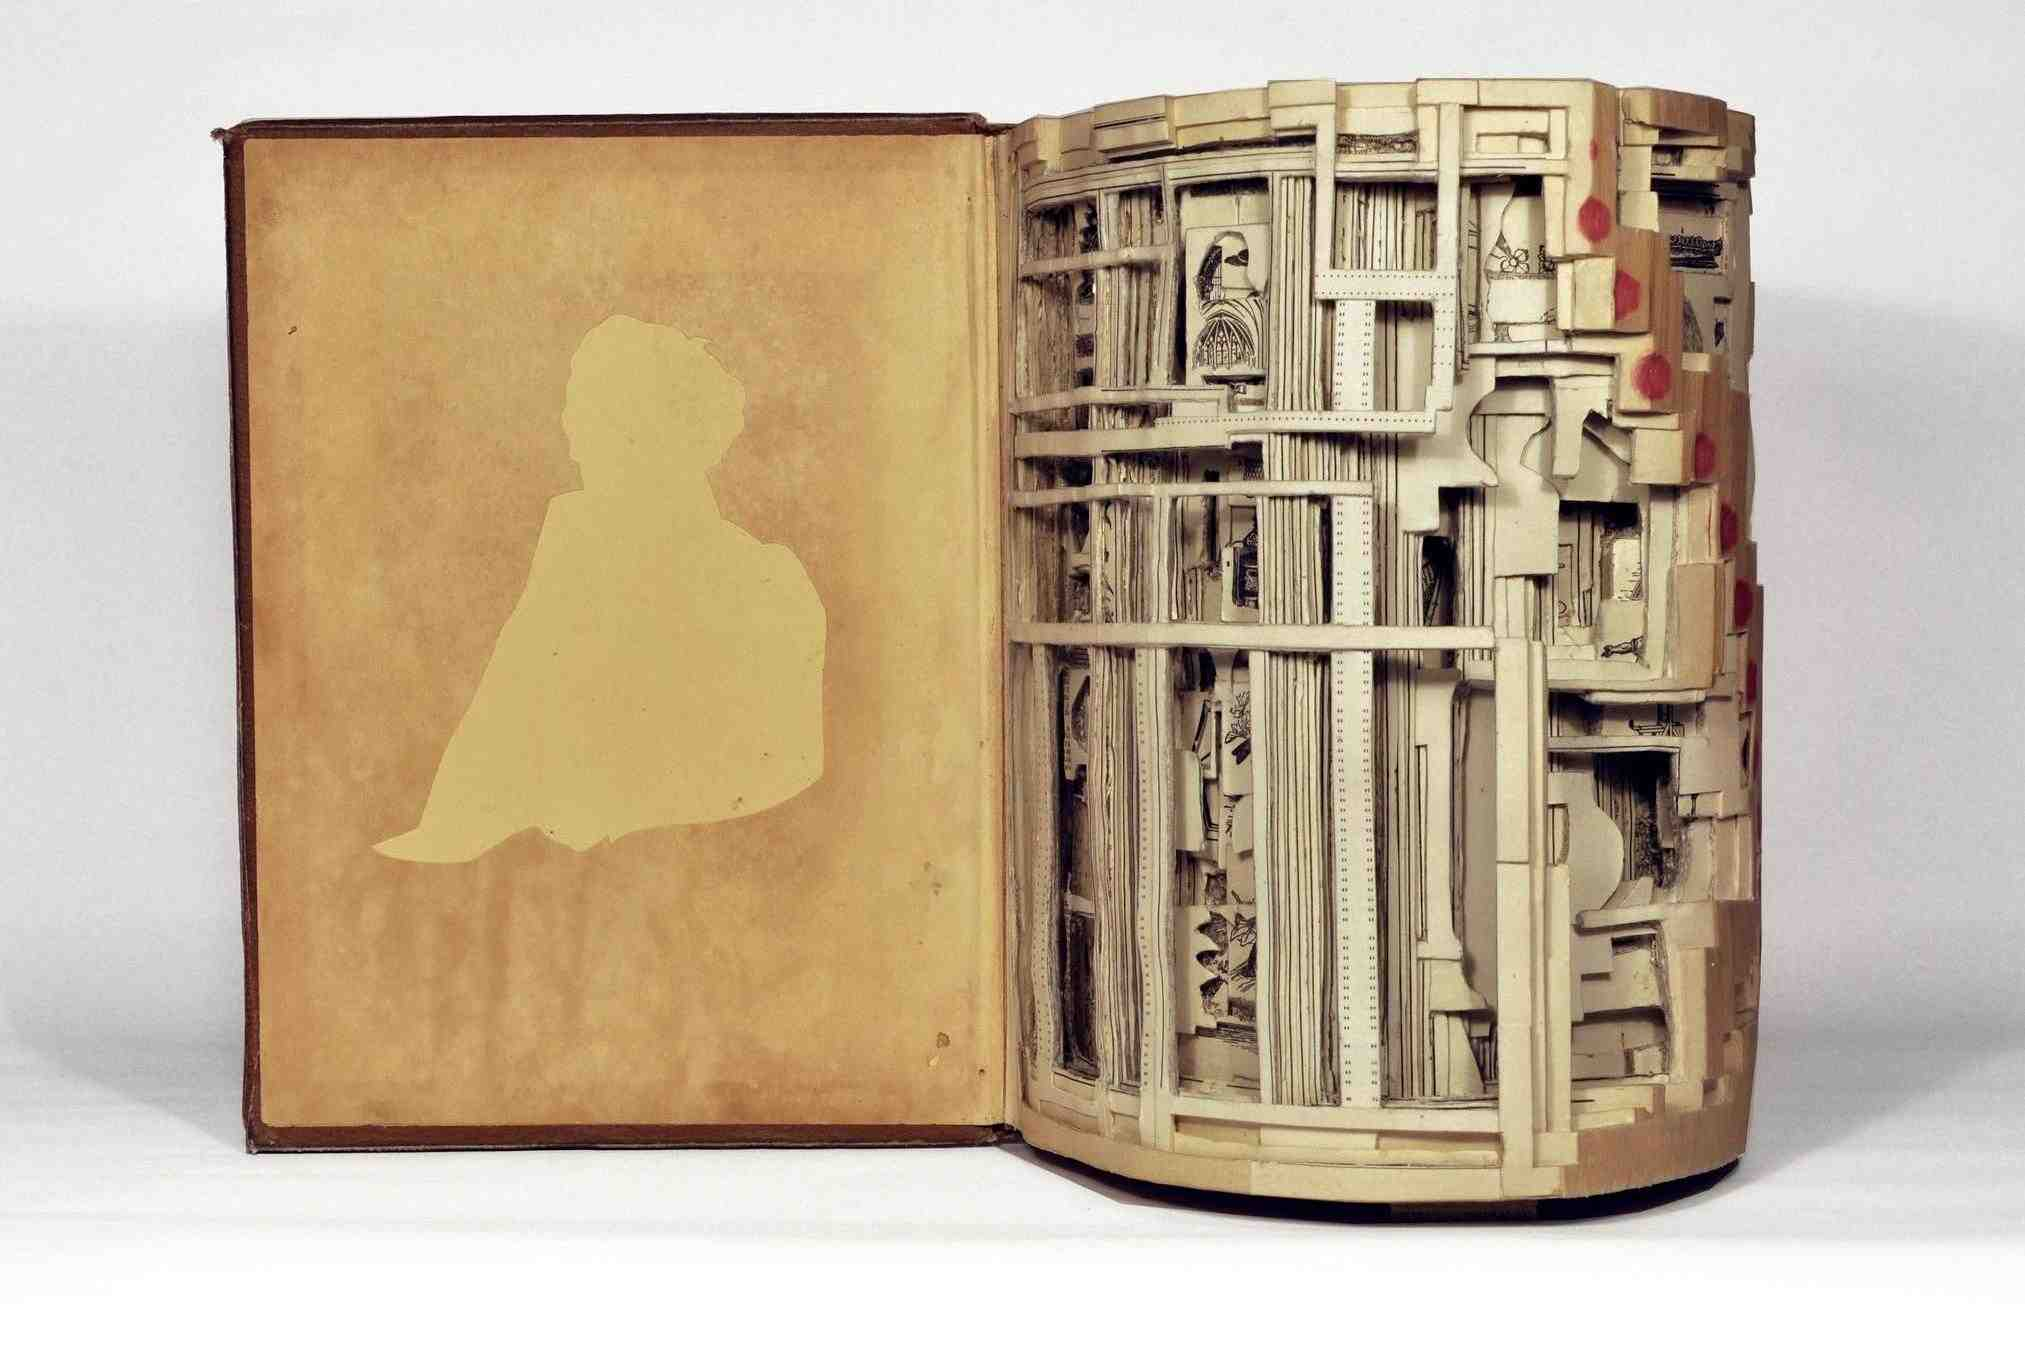 Breathing new life into old books with brian dettmer for Dettmer homes